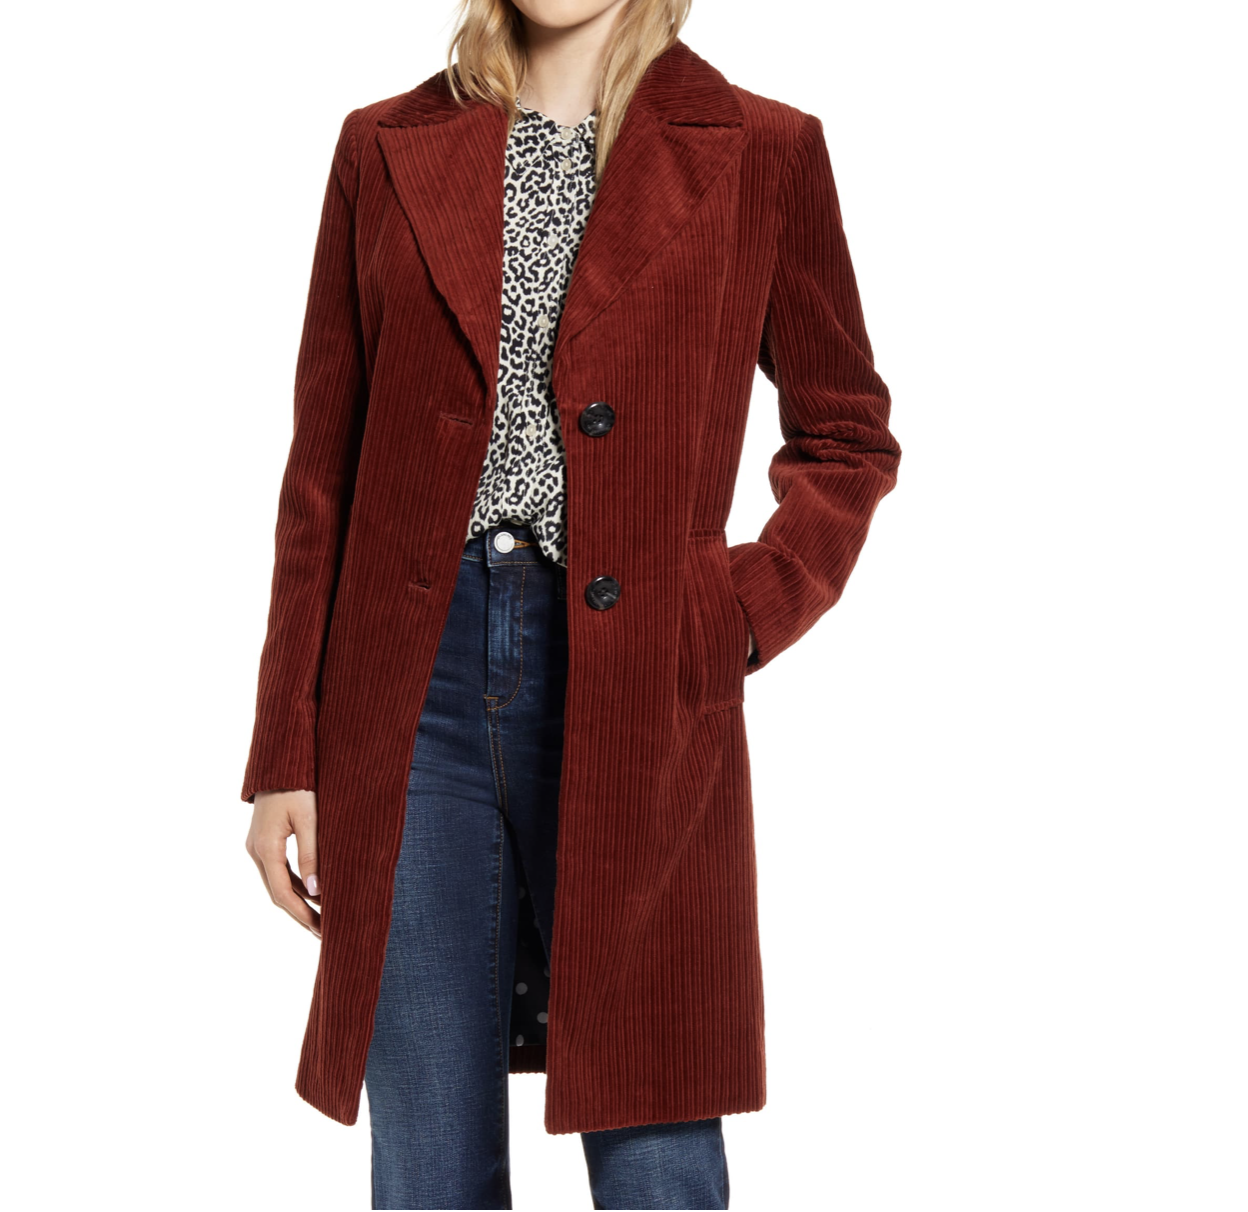 Red Corduroy Jacket | Nordstrom Anniversary Sale 2019 | A Demure Life Fashion Blog